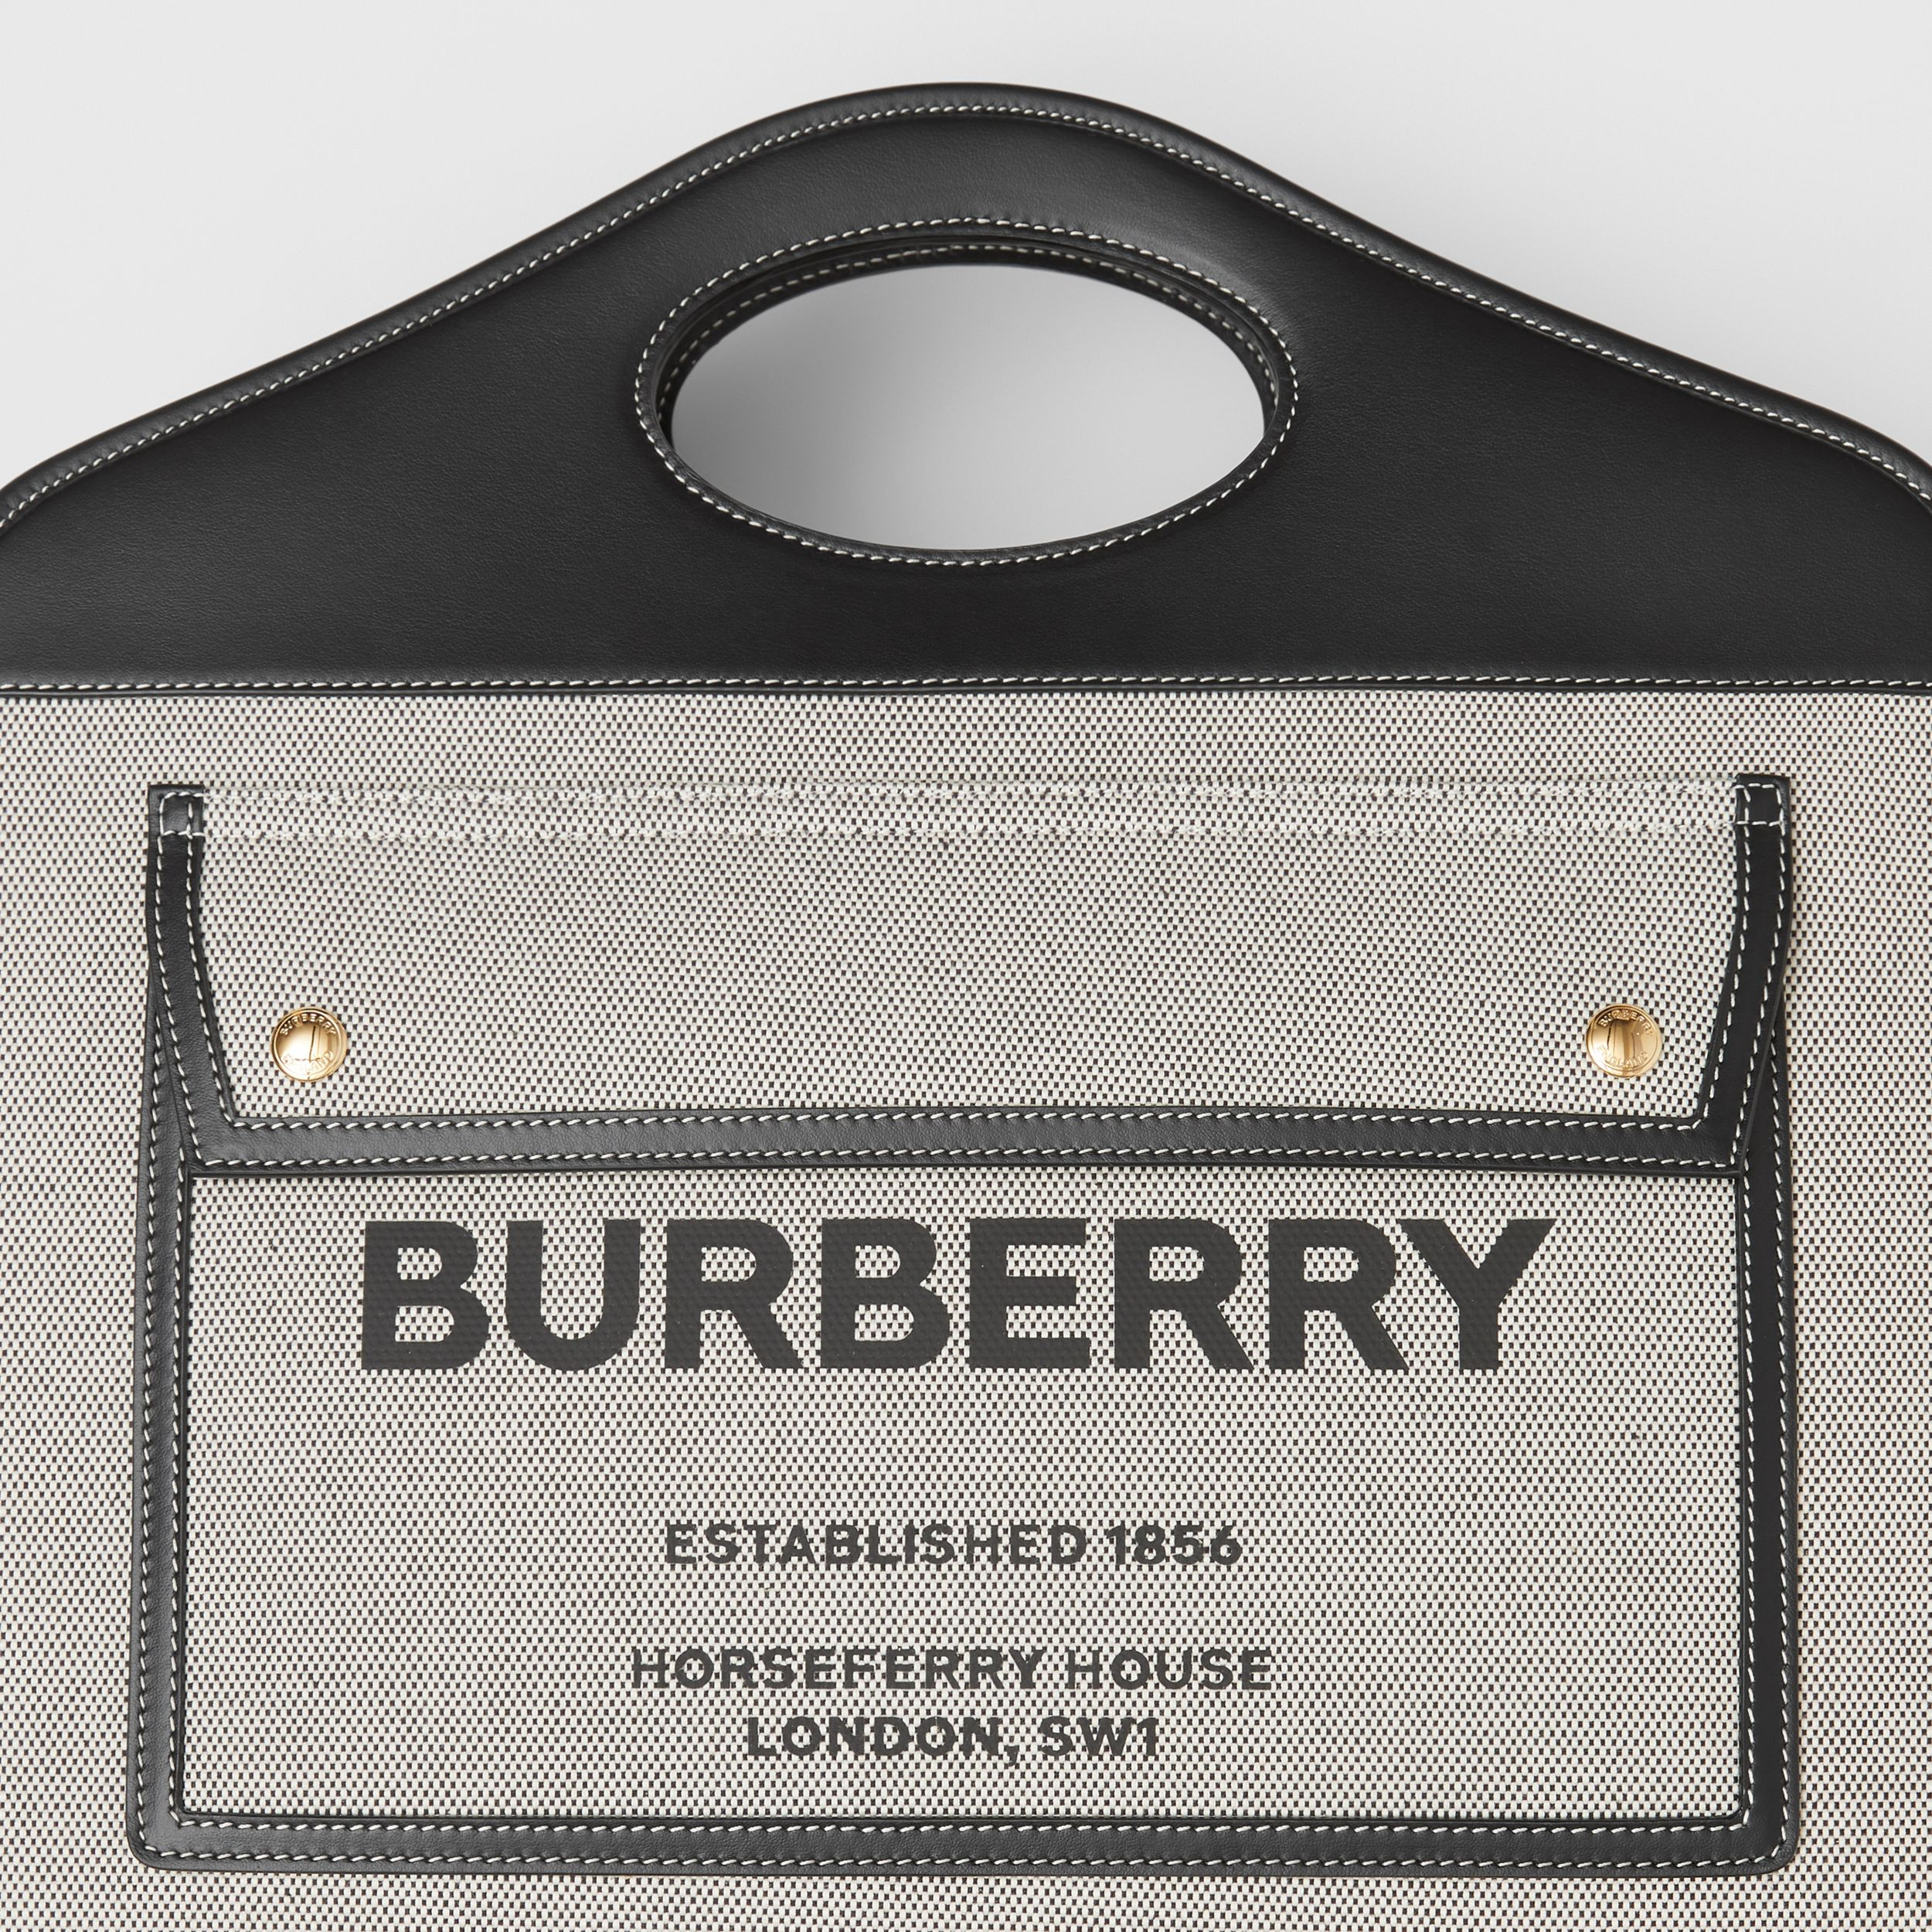 Medium Two-tone Canvas and Leather Pocket Tote in Black - Women | Burberry - 2